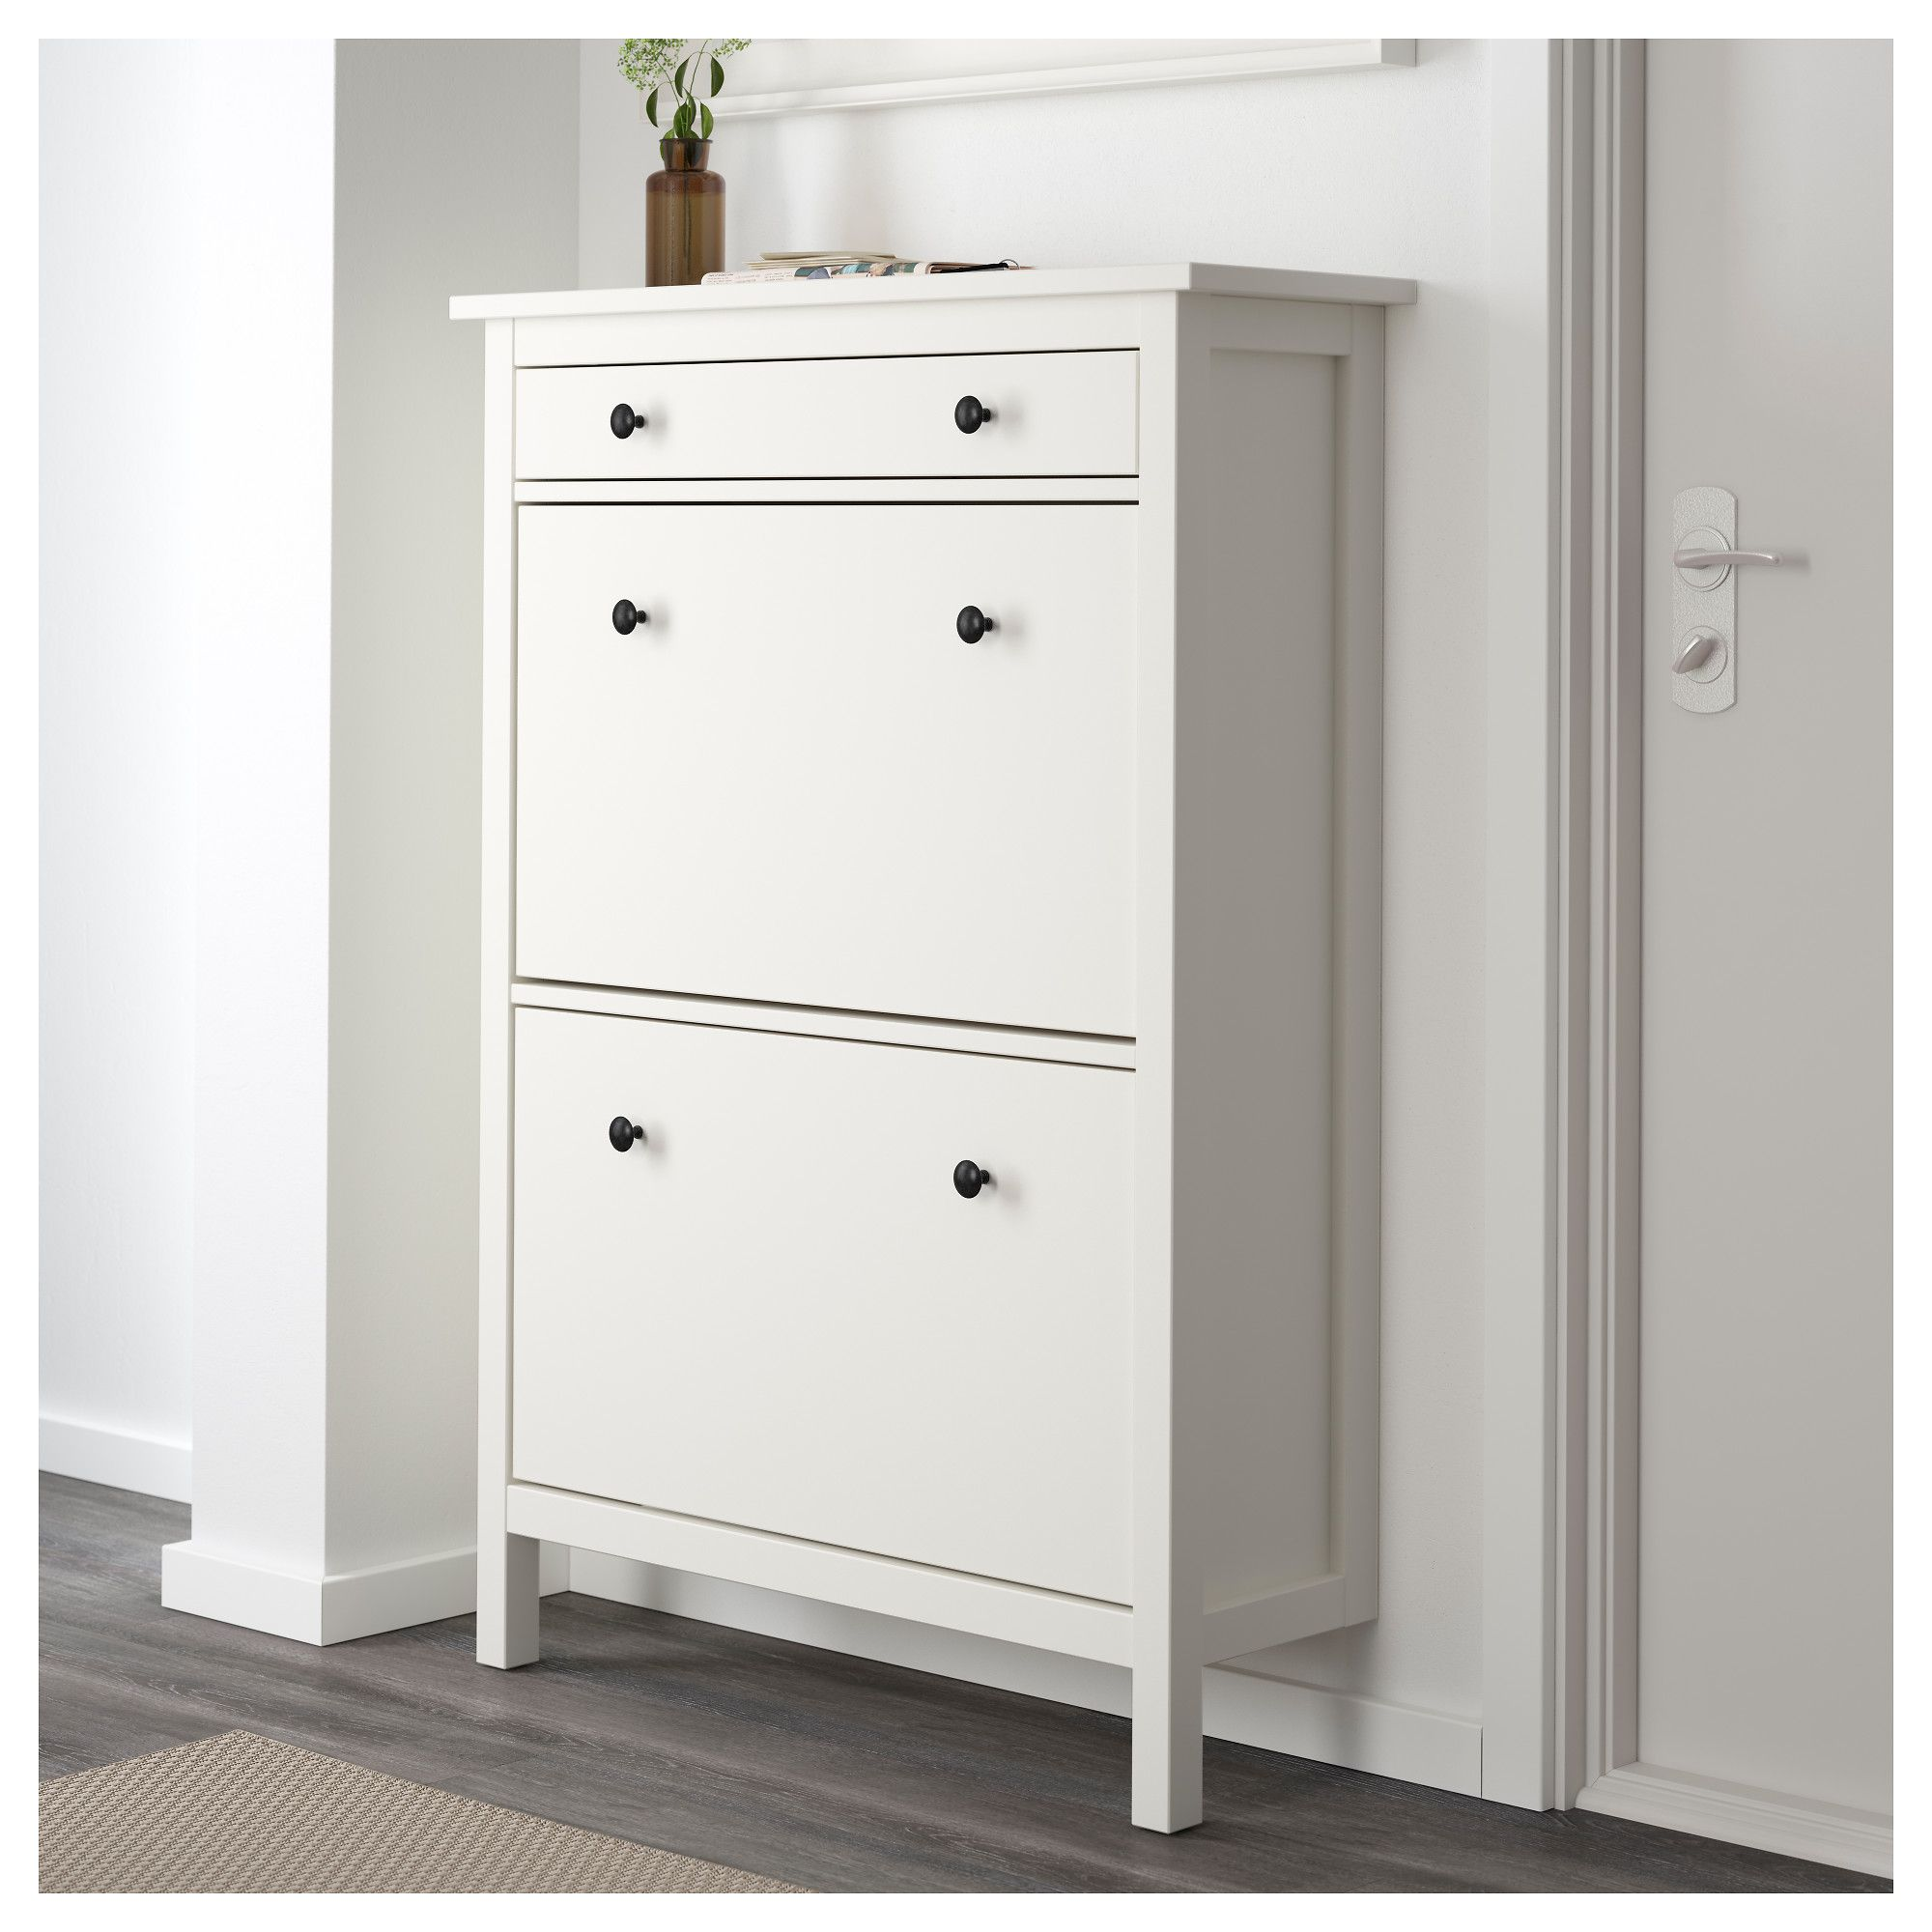 Best Ikea Hemnes Shoe Cabinet With 2 Compartments White 400 x 300